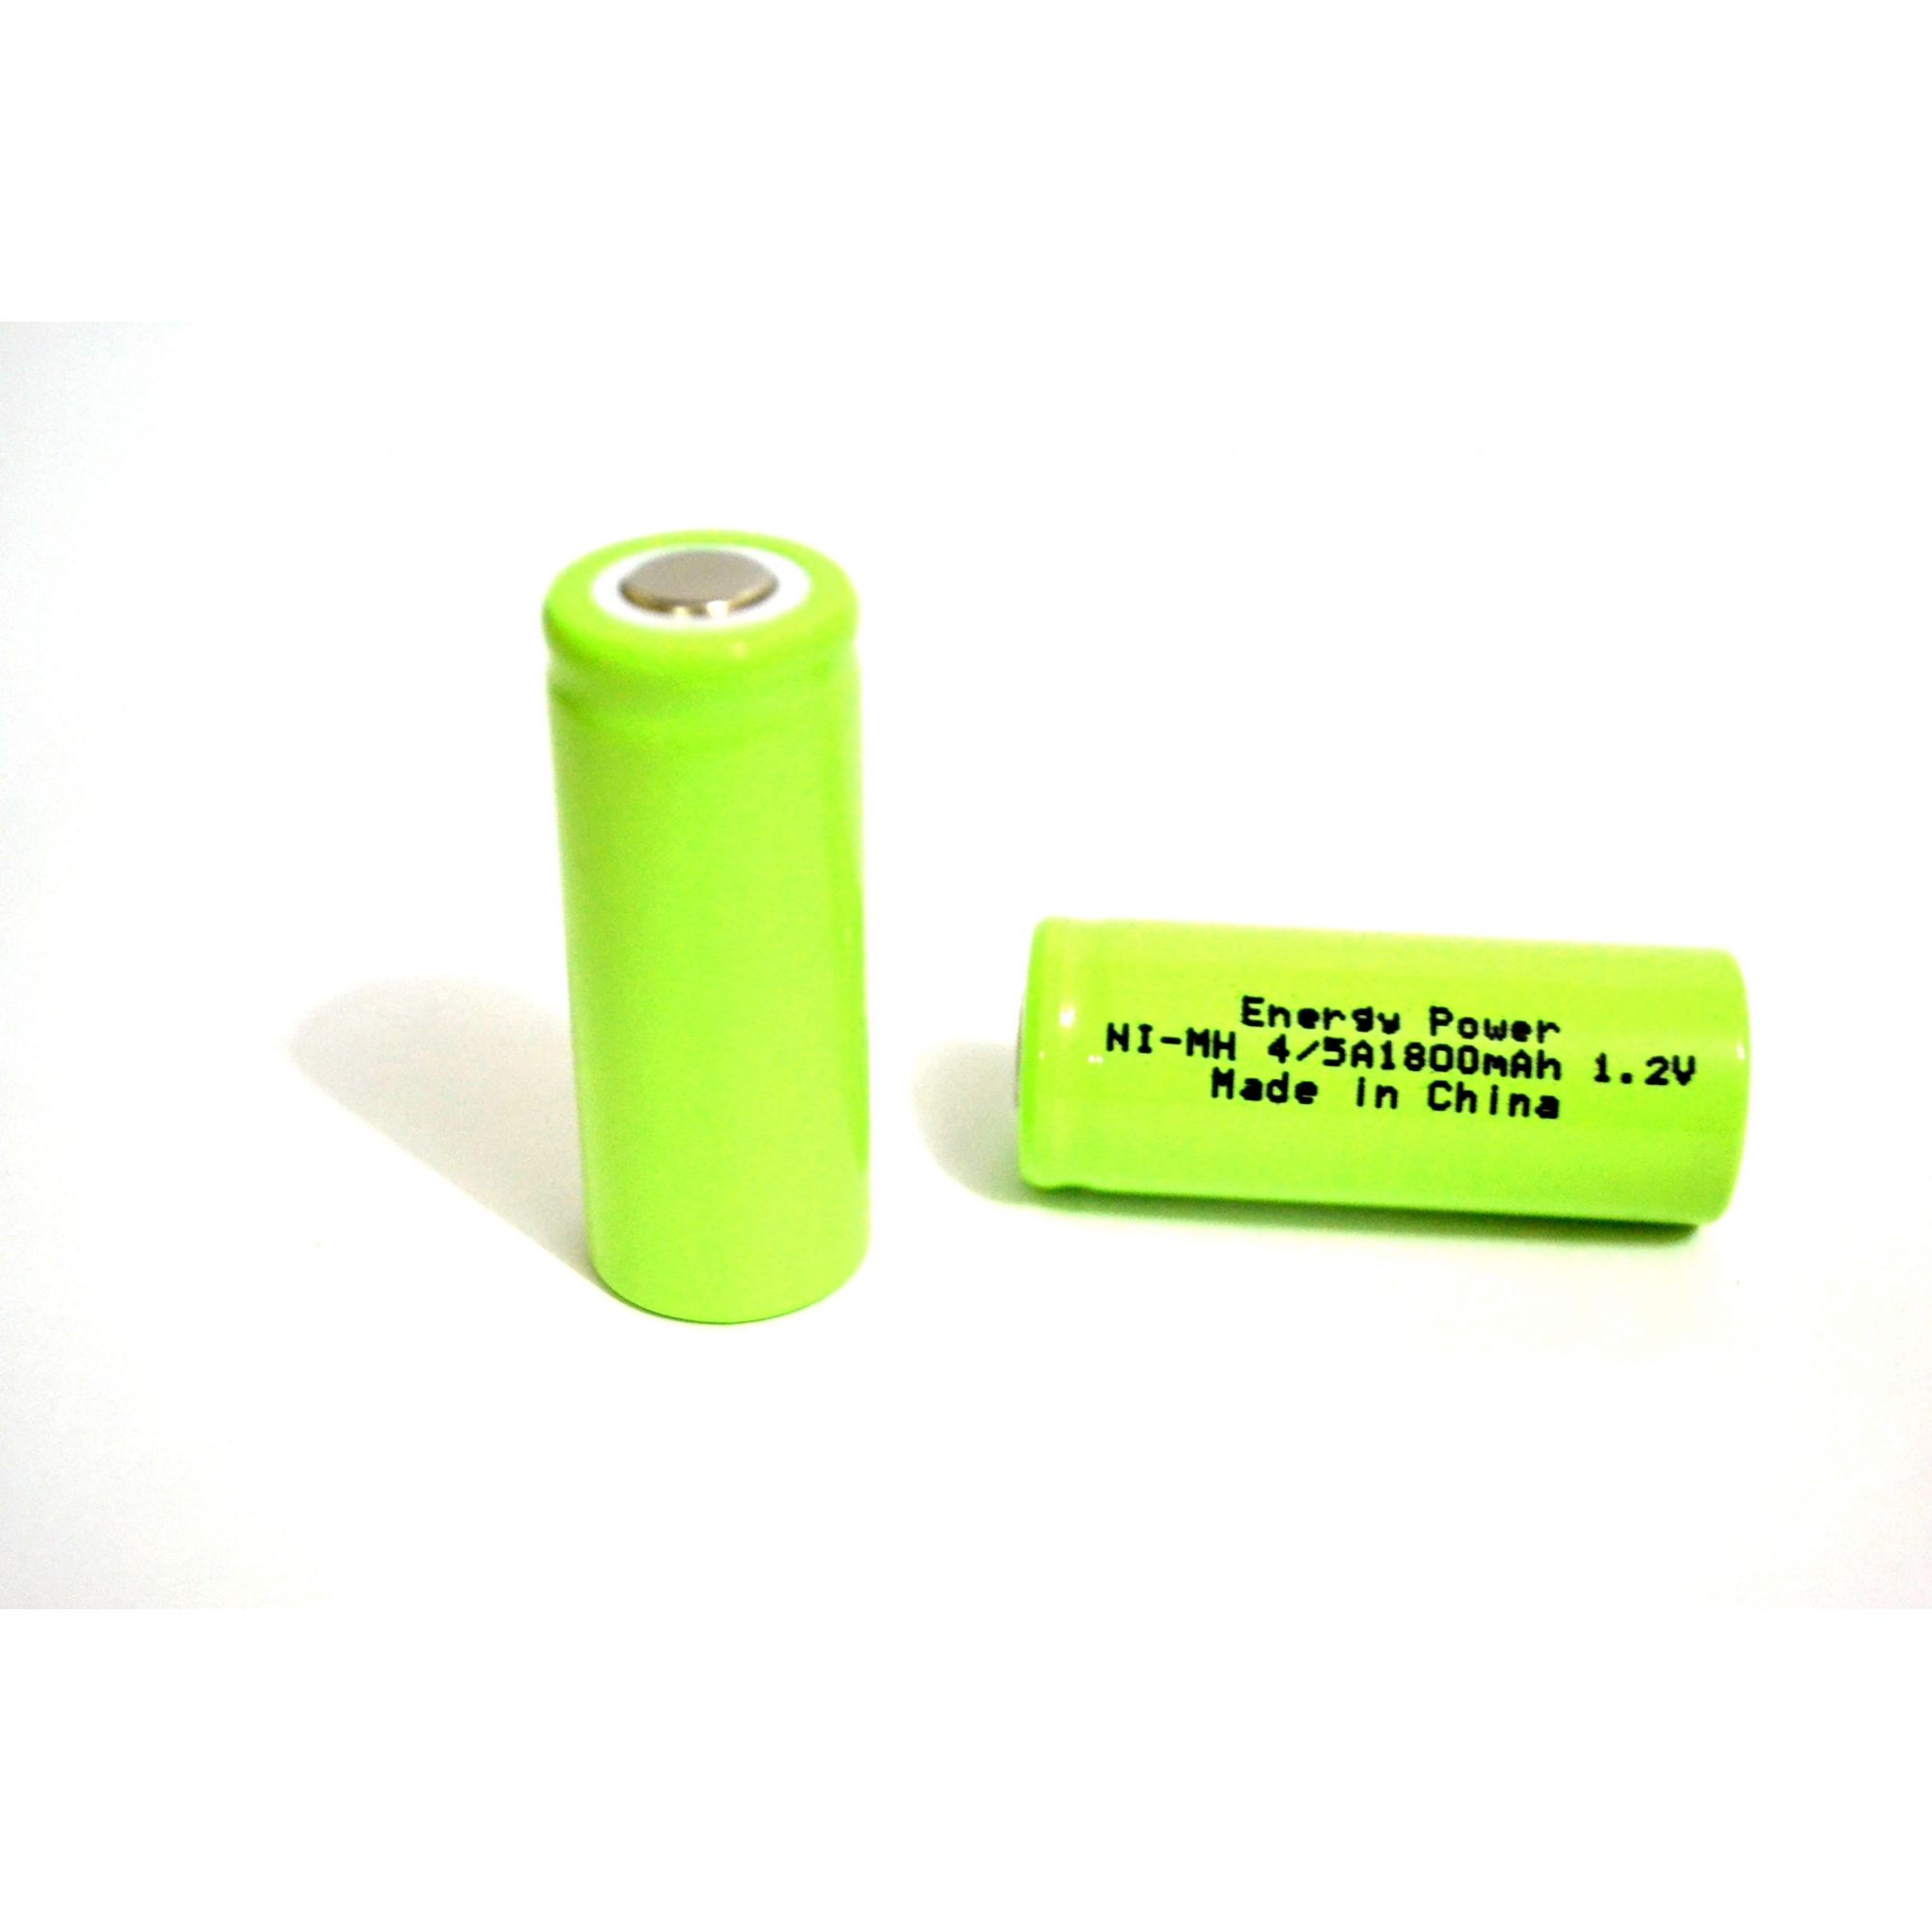 BATERIA ENERGY POWER 4/5A 1800MAH 1,2V NI-MH